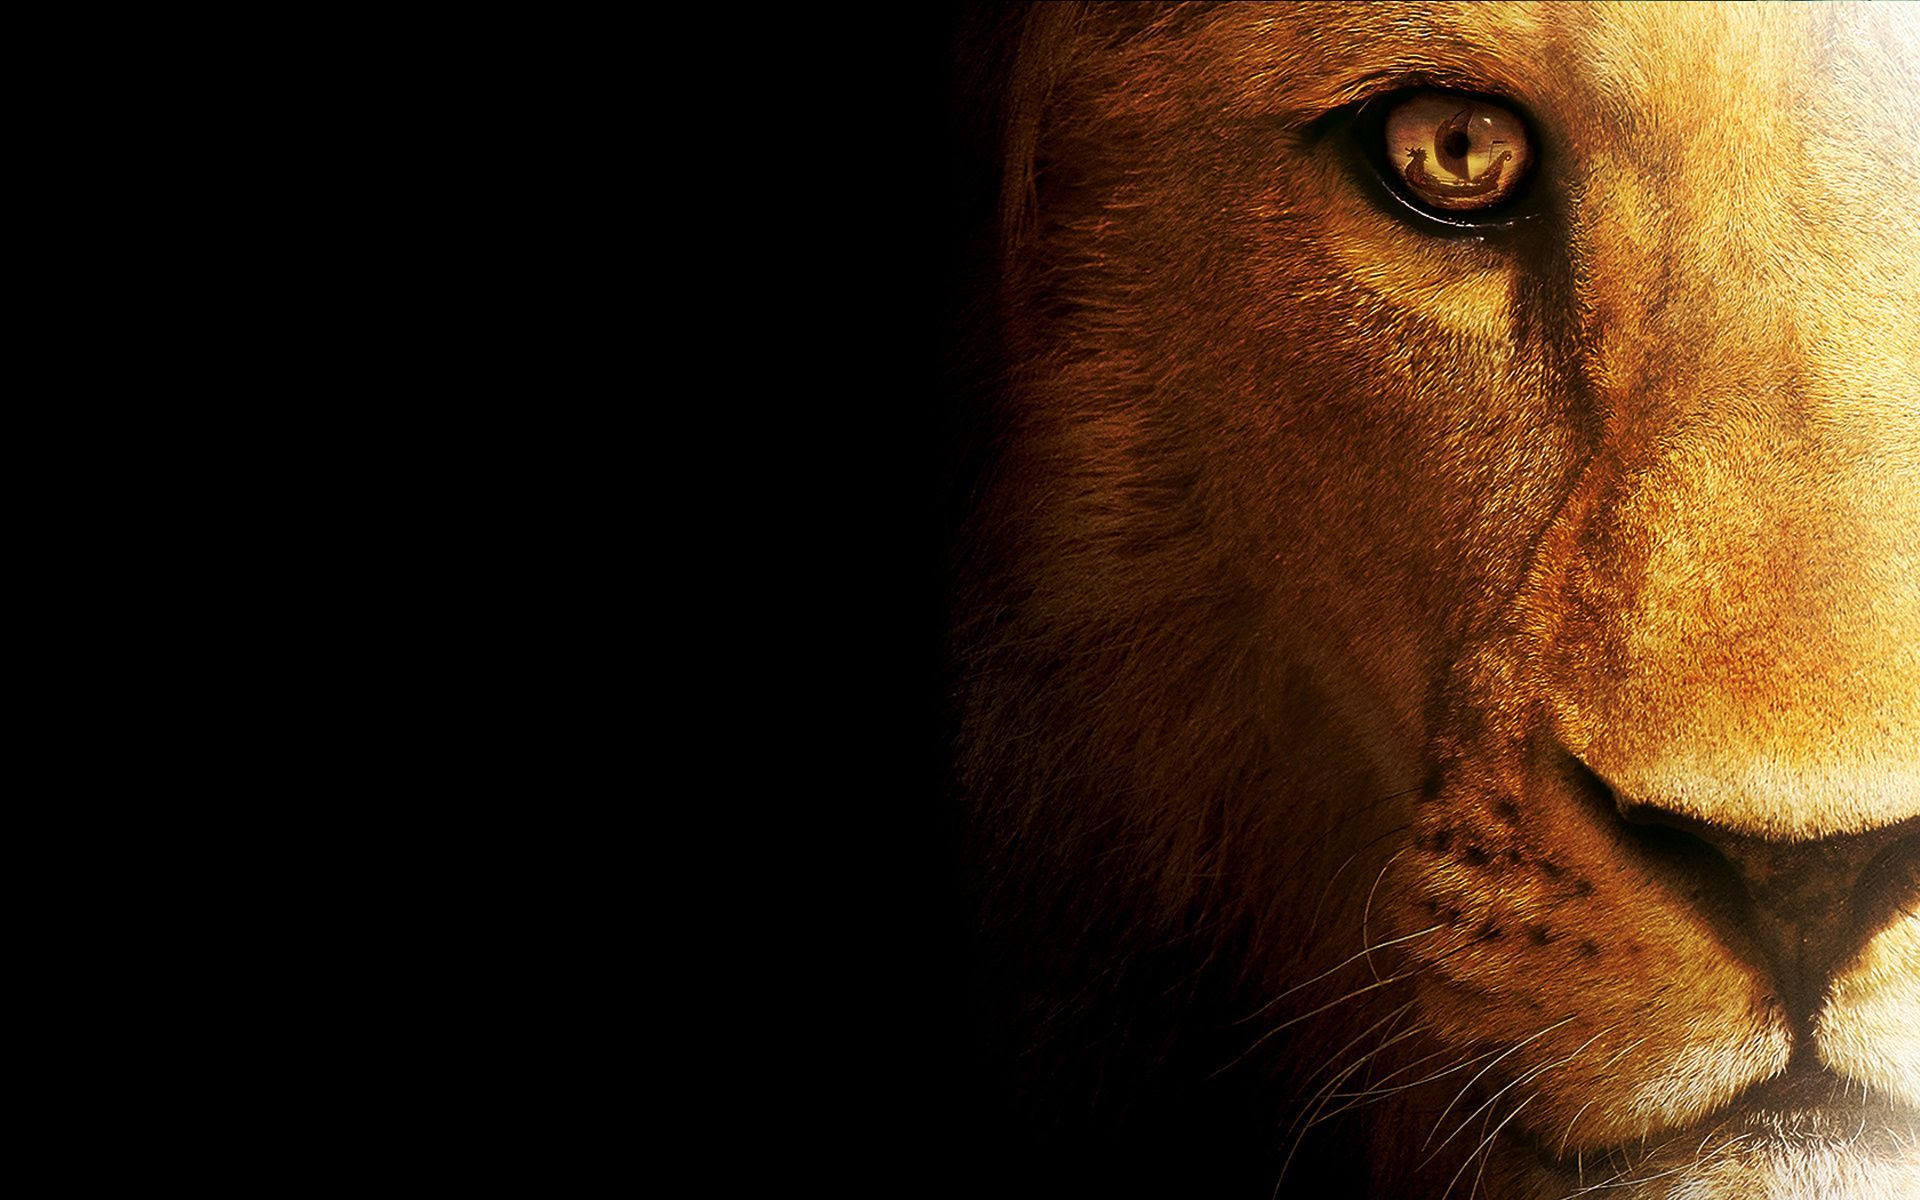 Wallpapers Of Lion 20 Wallpapers Adorable Wallpapers Images, Photos, Reviews